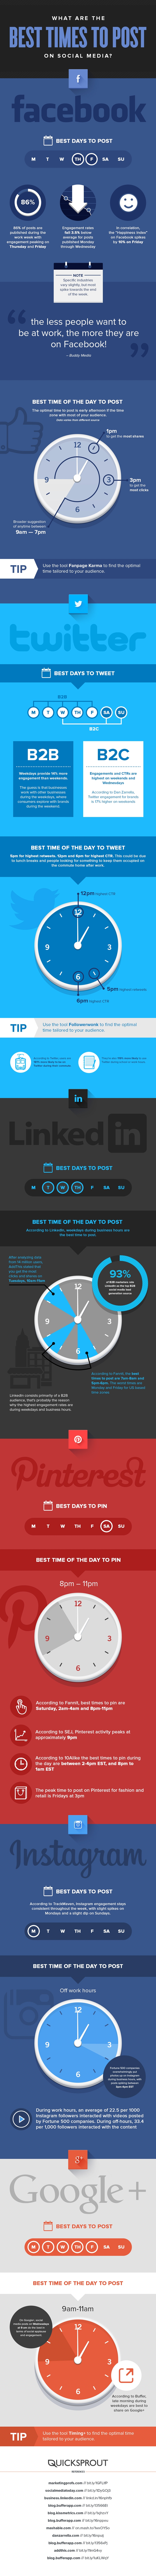 BestTime_Infographic-700